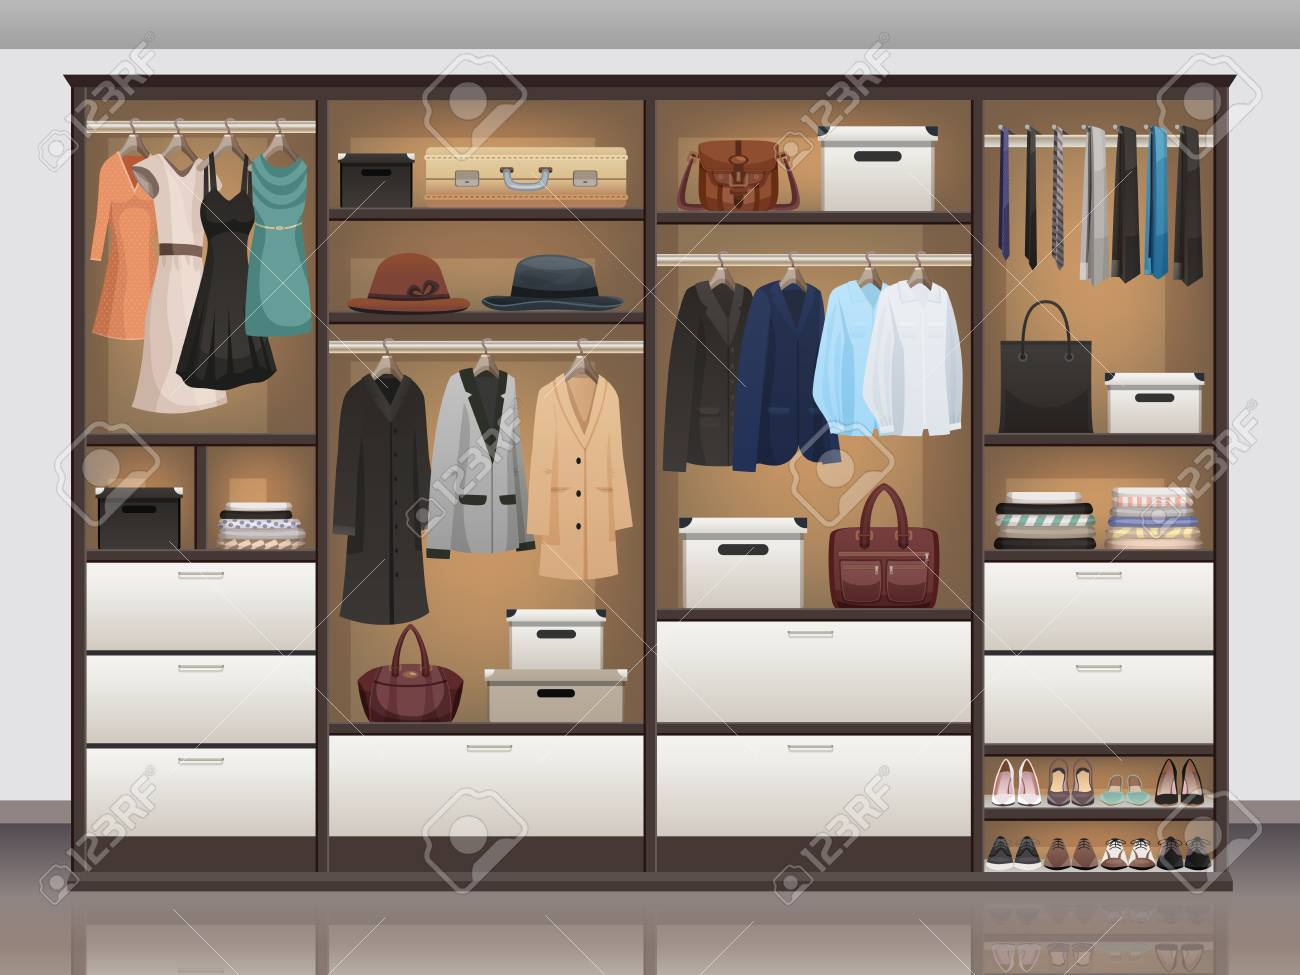 Bedroom wardrobe closet storage with interior organizers shoe..